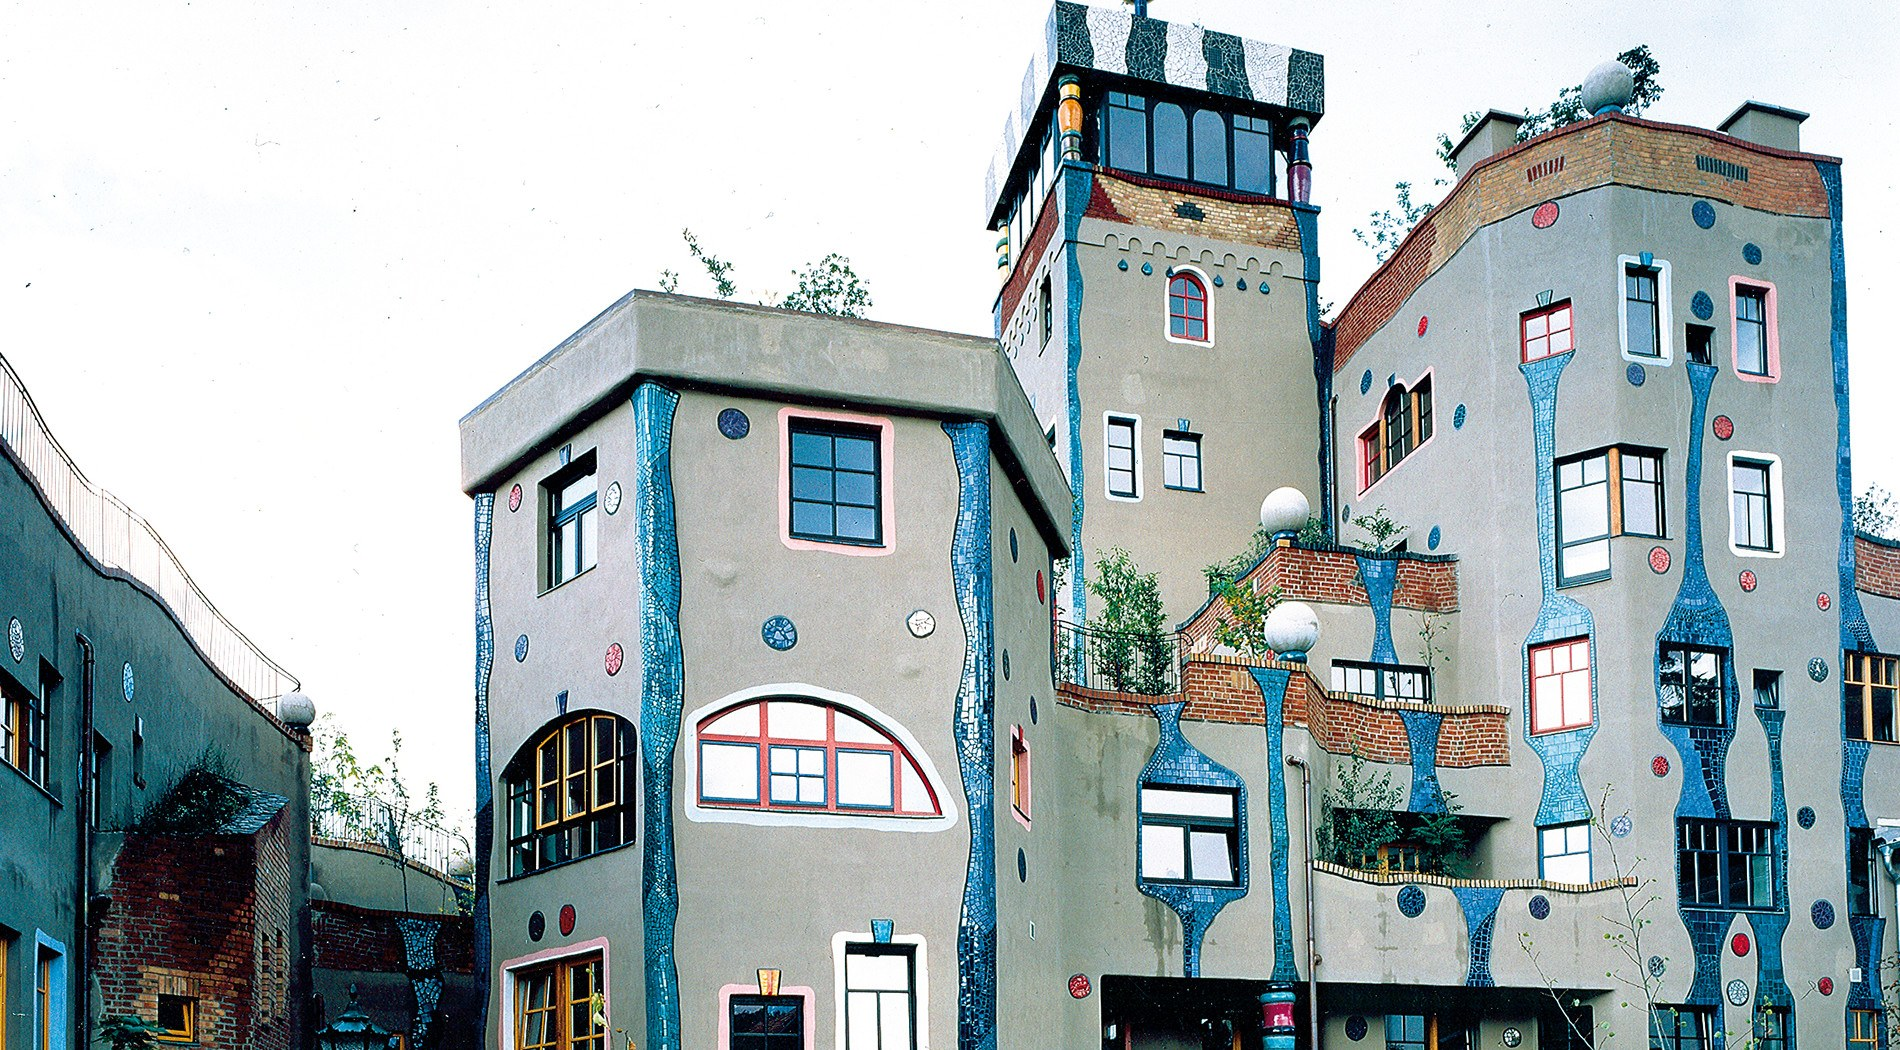 Project: Hundertwasser House in Bad-Soden / Germany